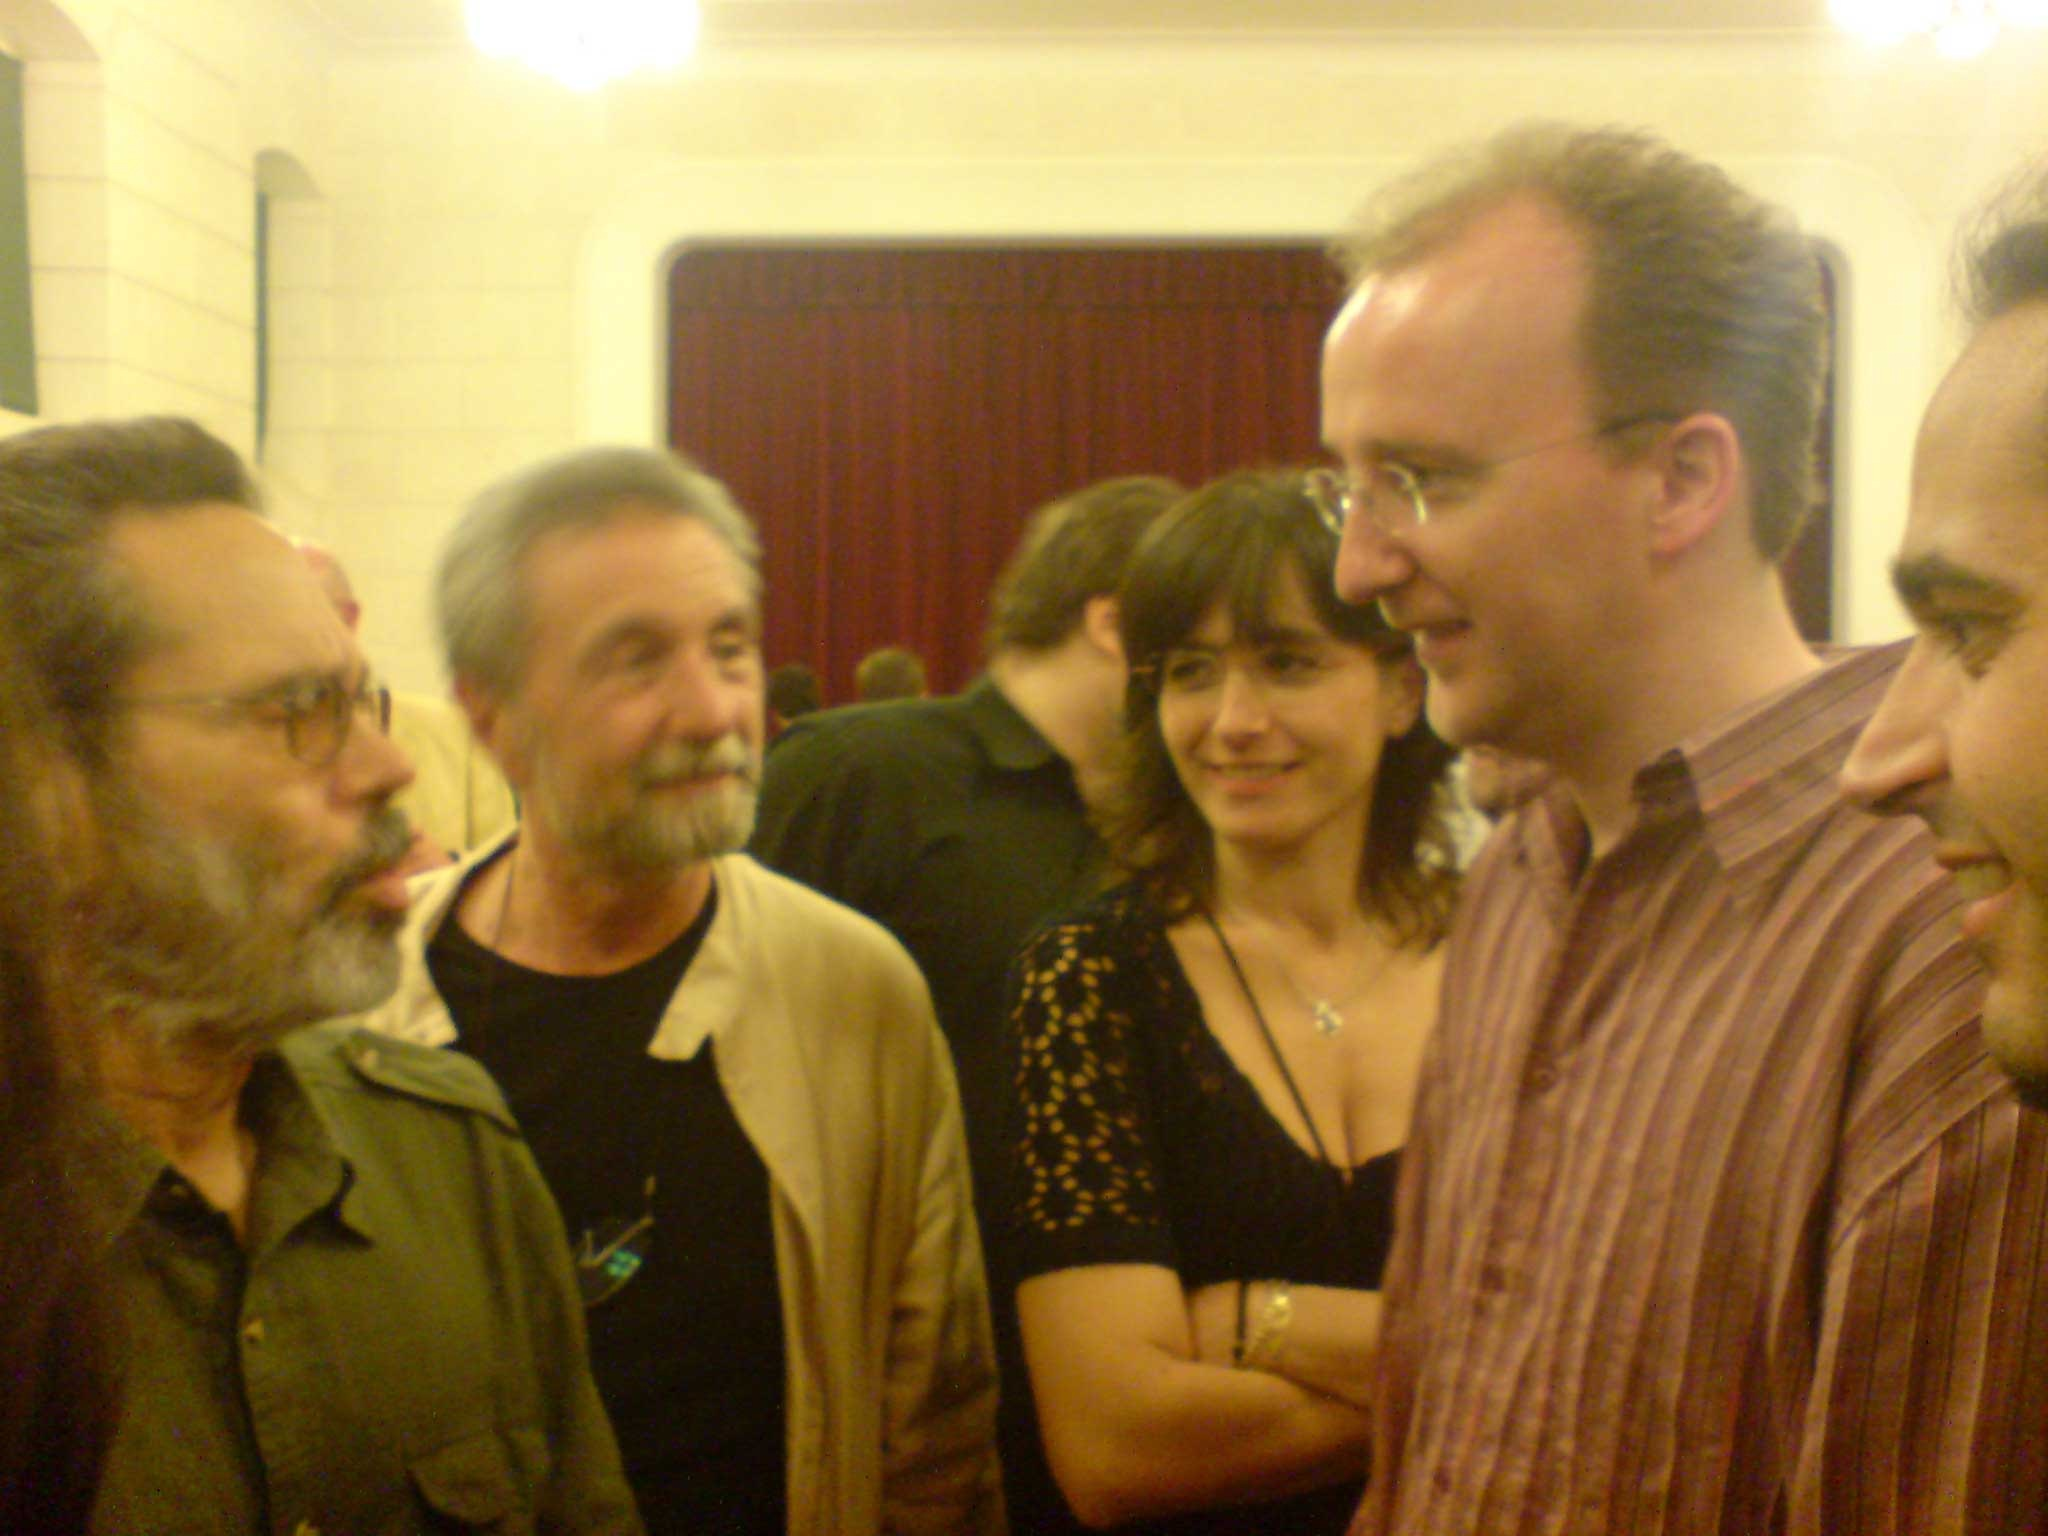 Leo Brouwer and Paolo Paolini